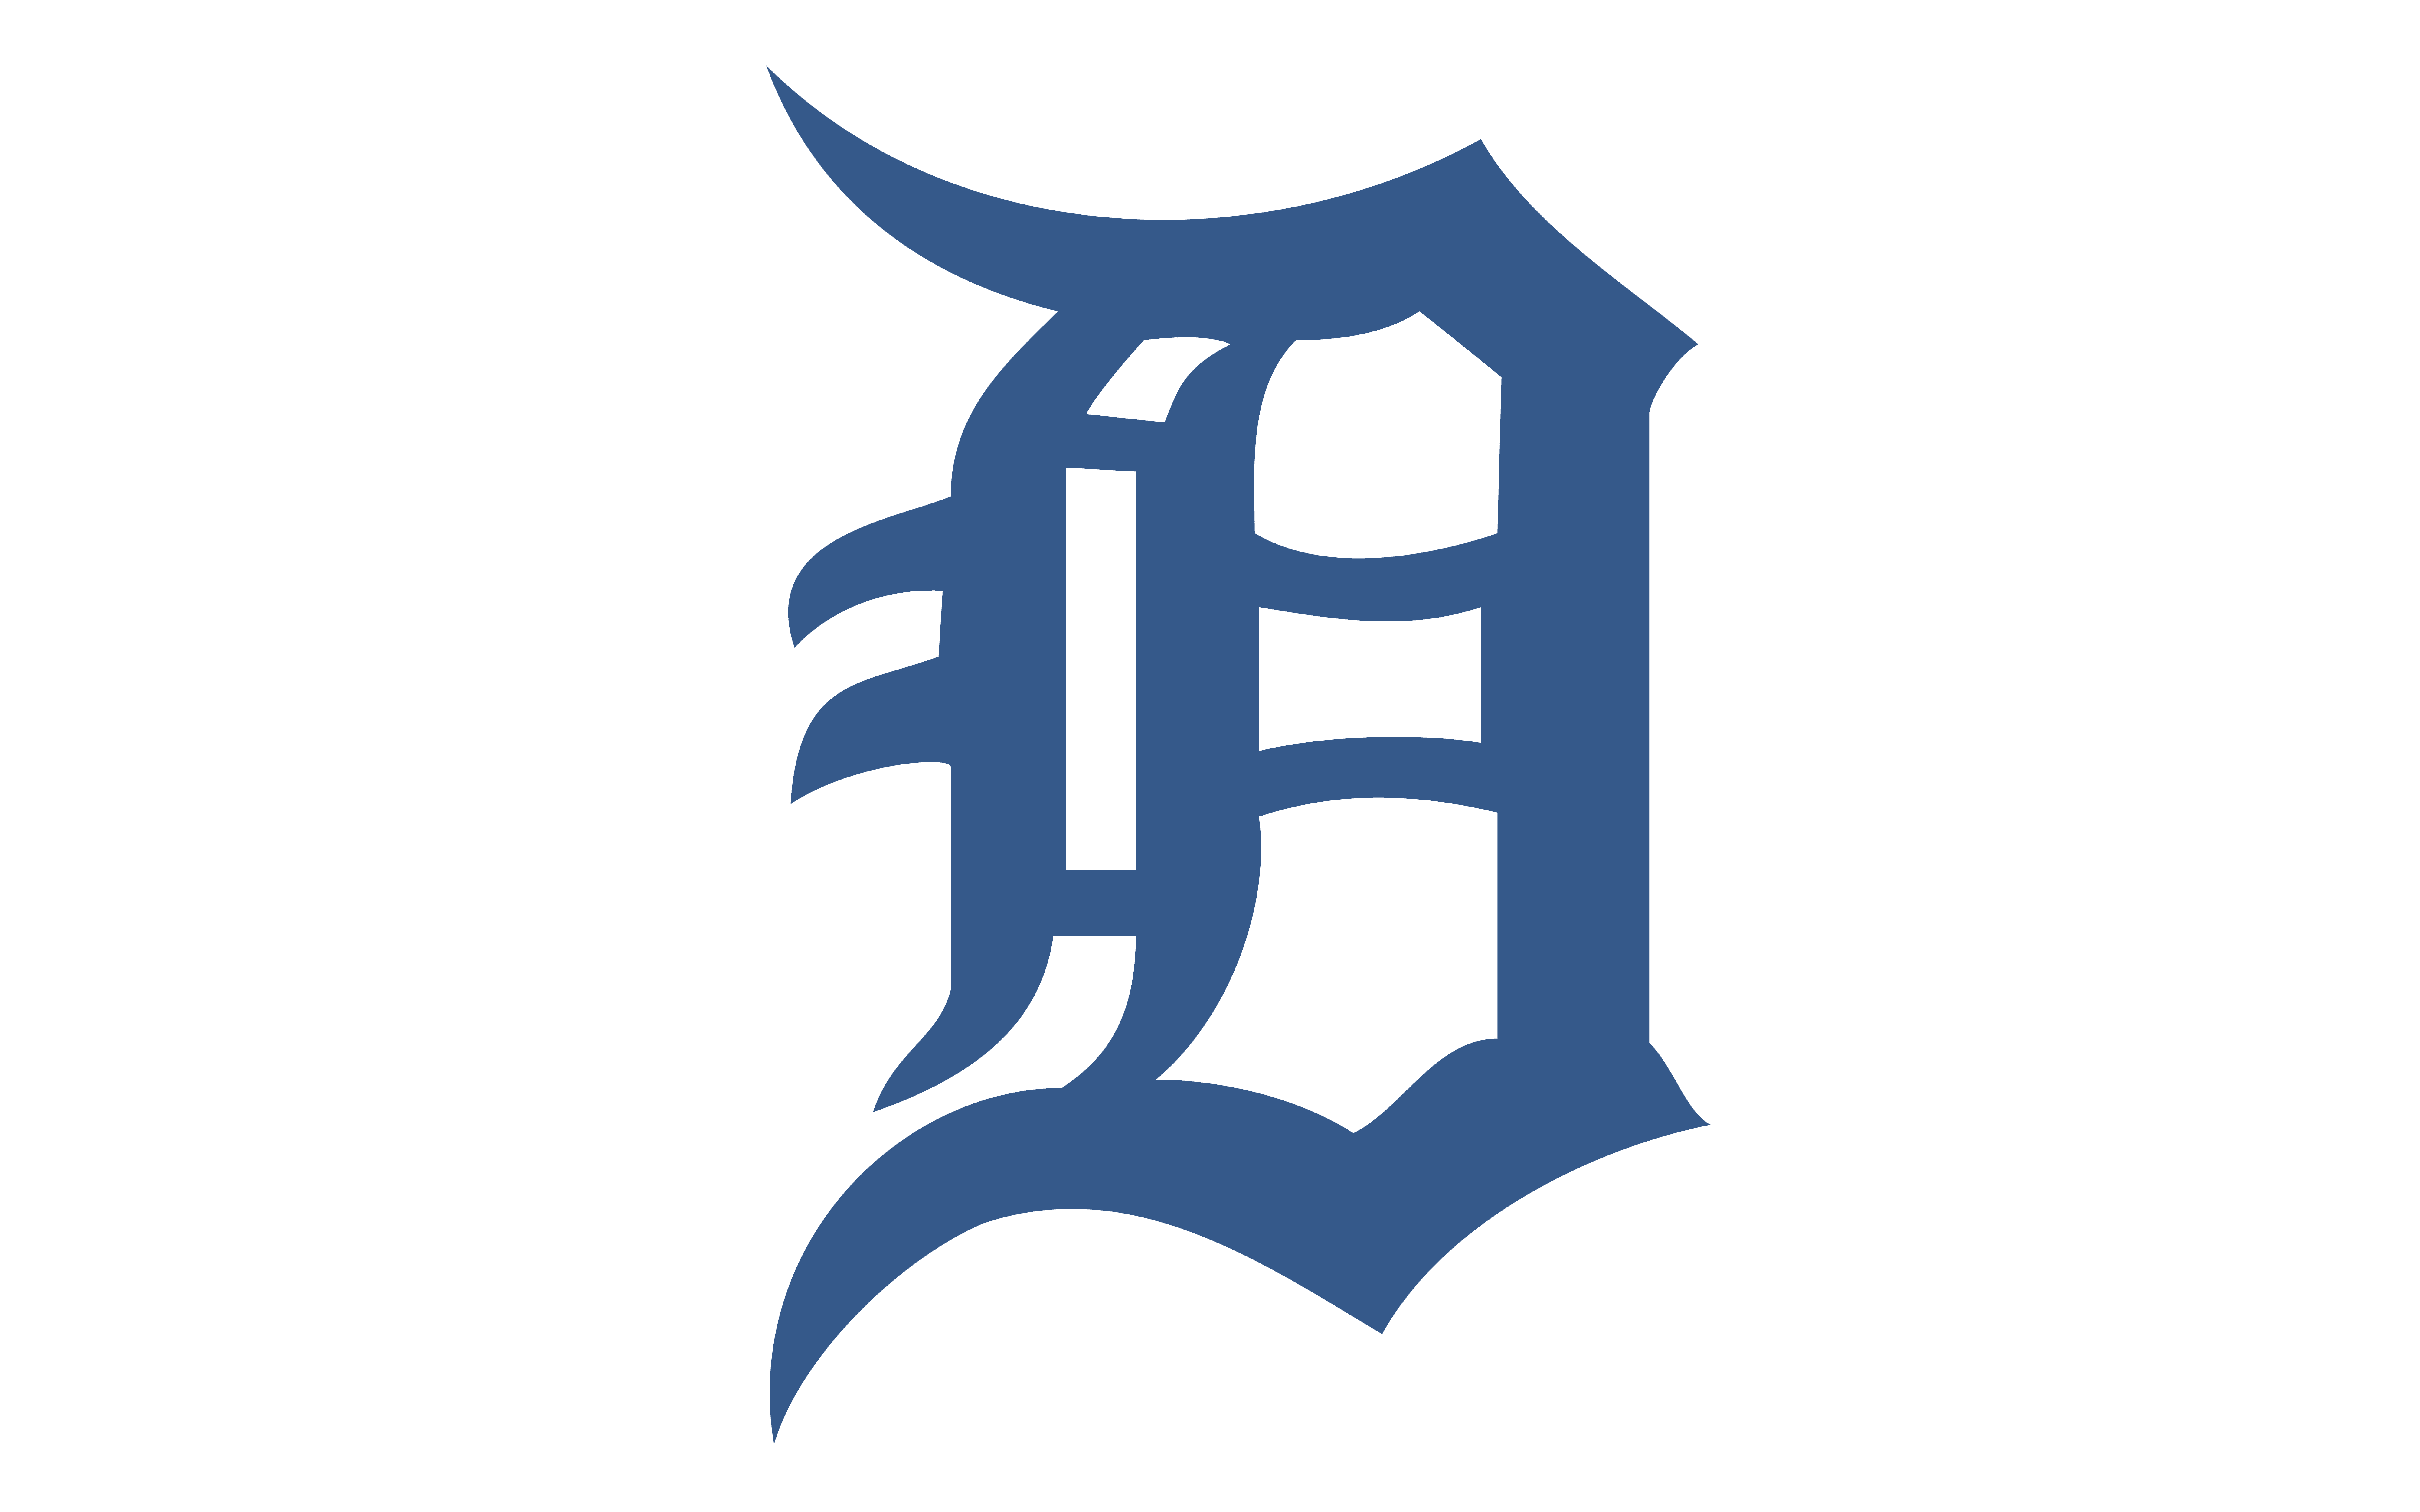 detroit tigers logo detroit tigers symbol meaning history and rh 1000logos net